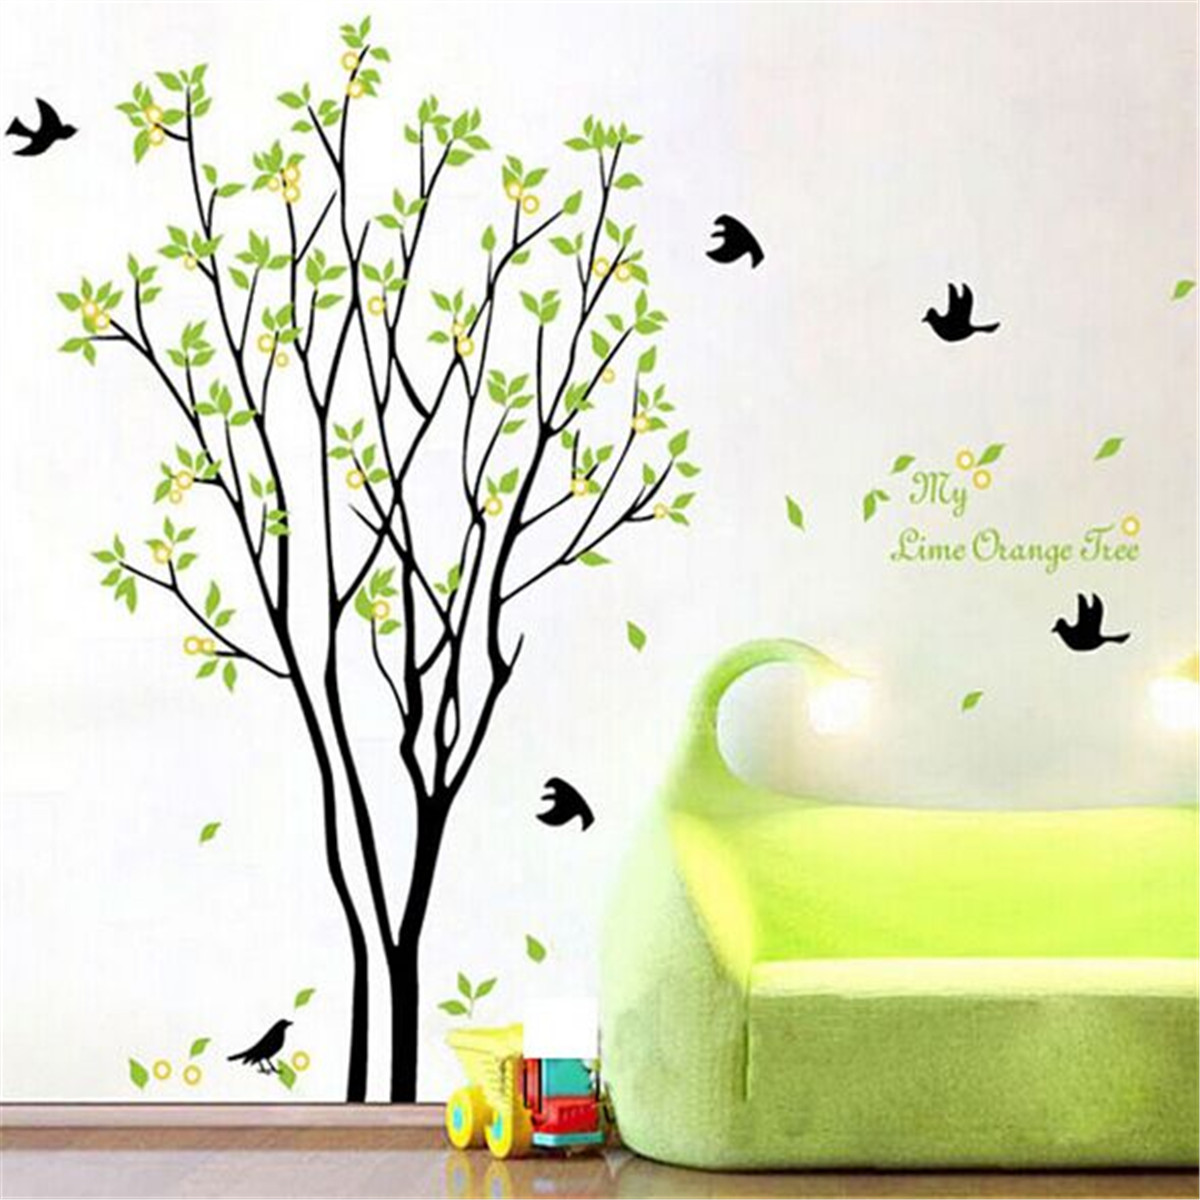 Wall art stickers birds : Tree bird quote removable vinyl wall decal mural home art